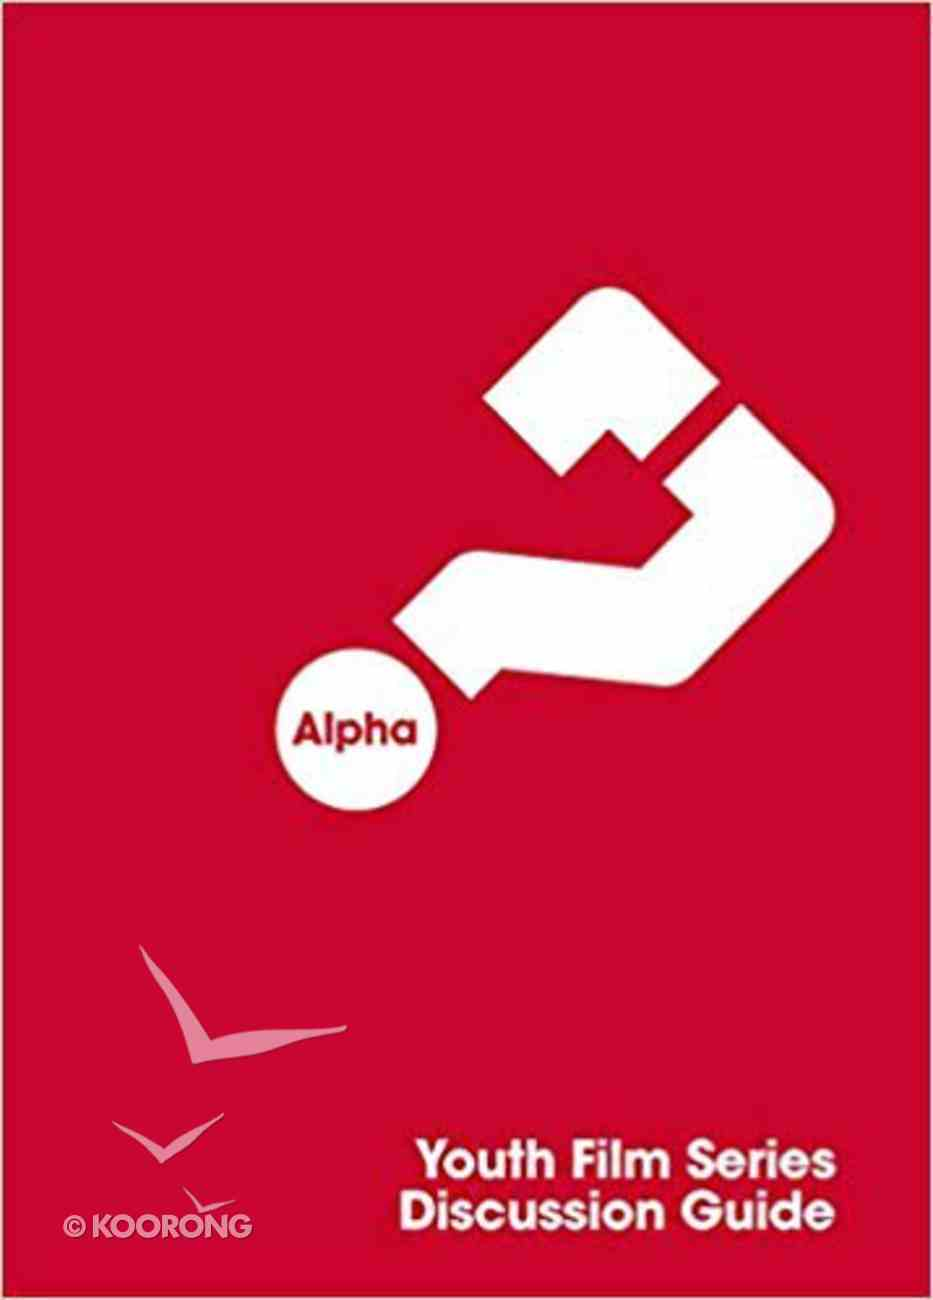 Alpha Youth Film Series 2014 (Discussion Guide) (Alpha North American Series) Paperback